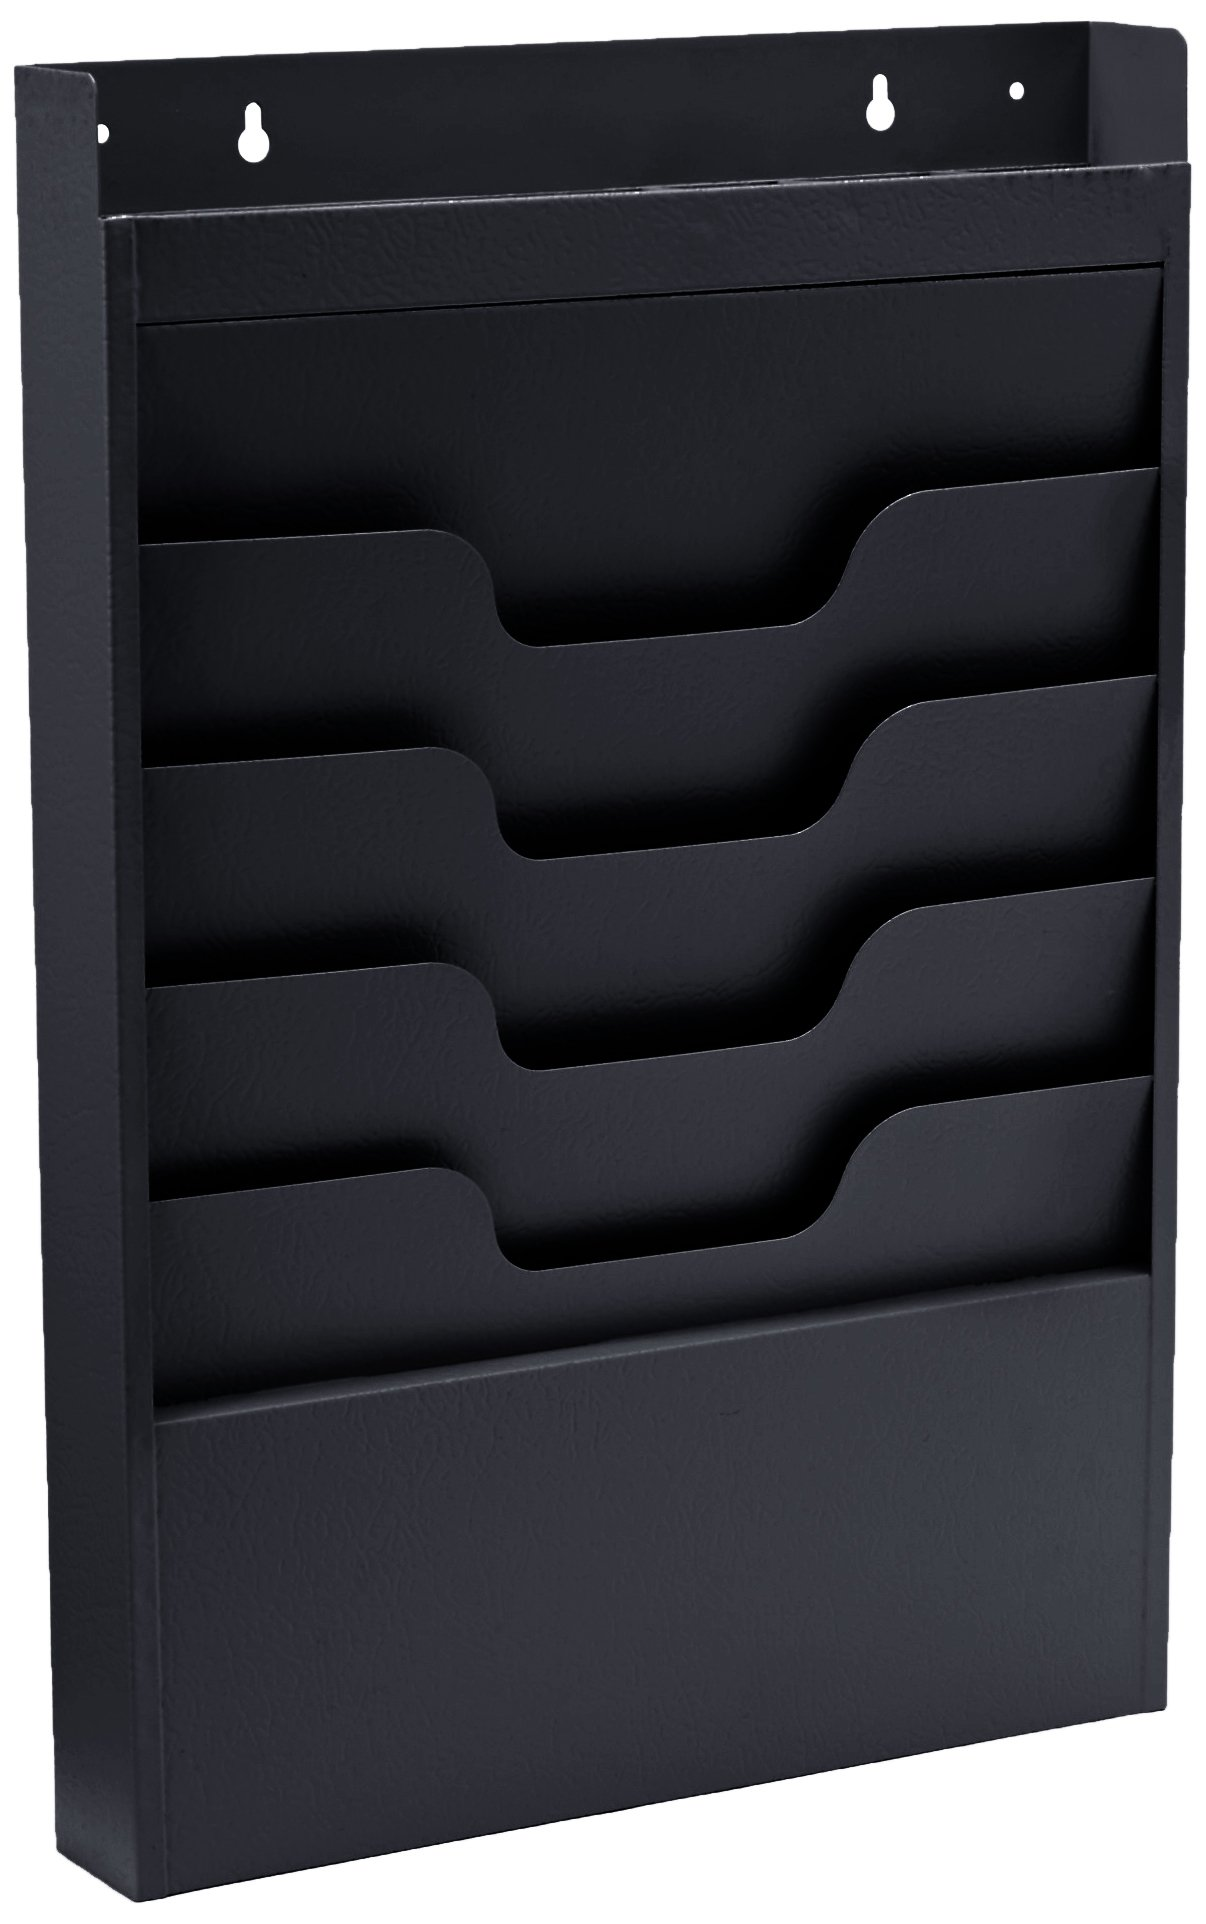 Buddy Products Task File Organizer Rack, Steel, 4 Pockets, 2 x 19.75 x 13.5 Inches, Black (0841-4) by Buddy Products